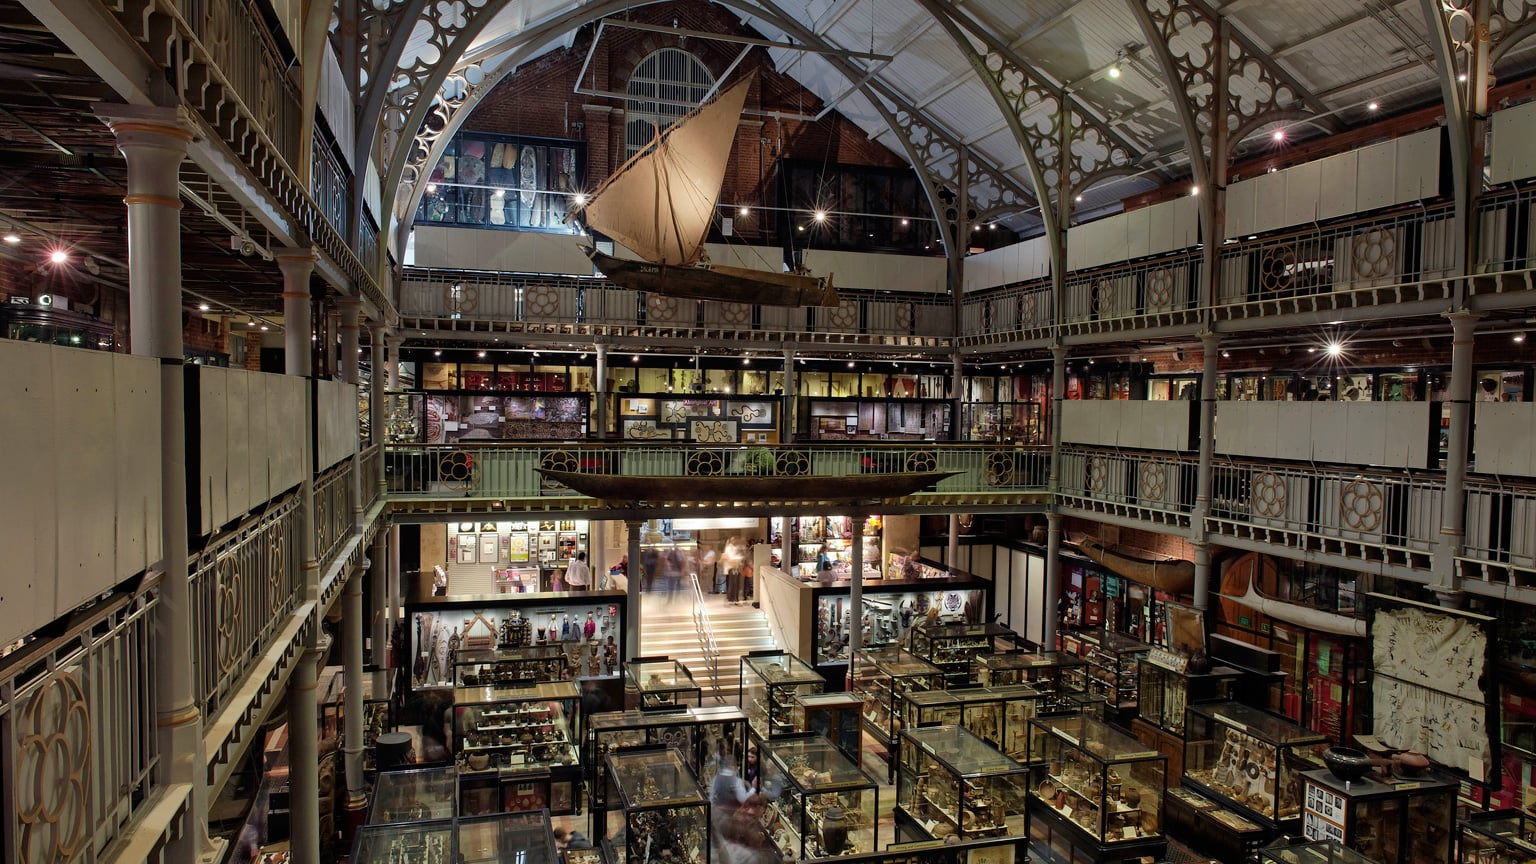 5. Pitt Rivers Museum, Oxford - Free entry to all